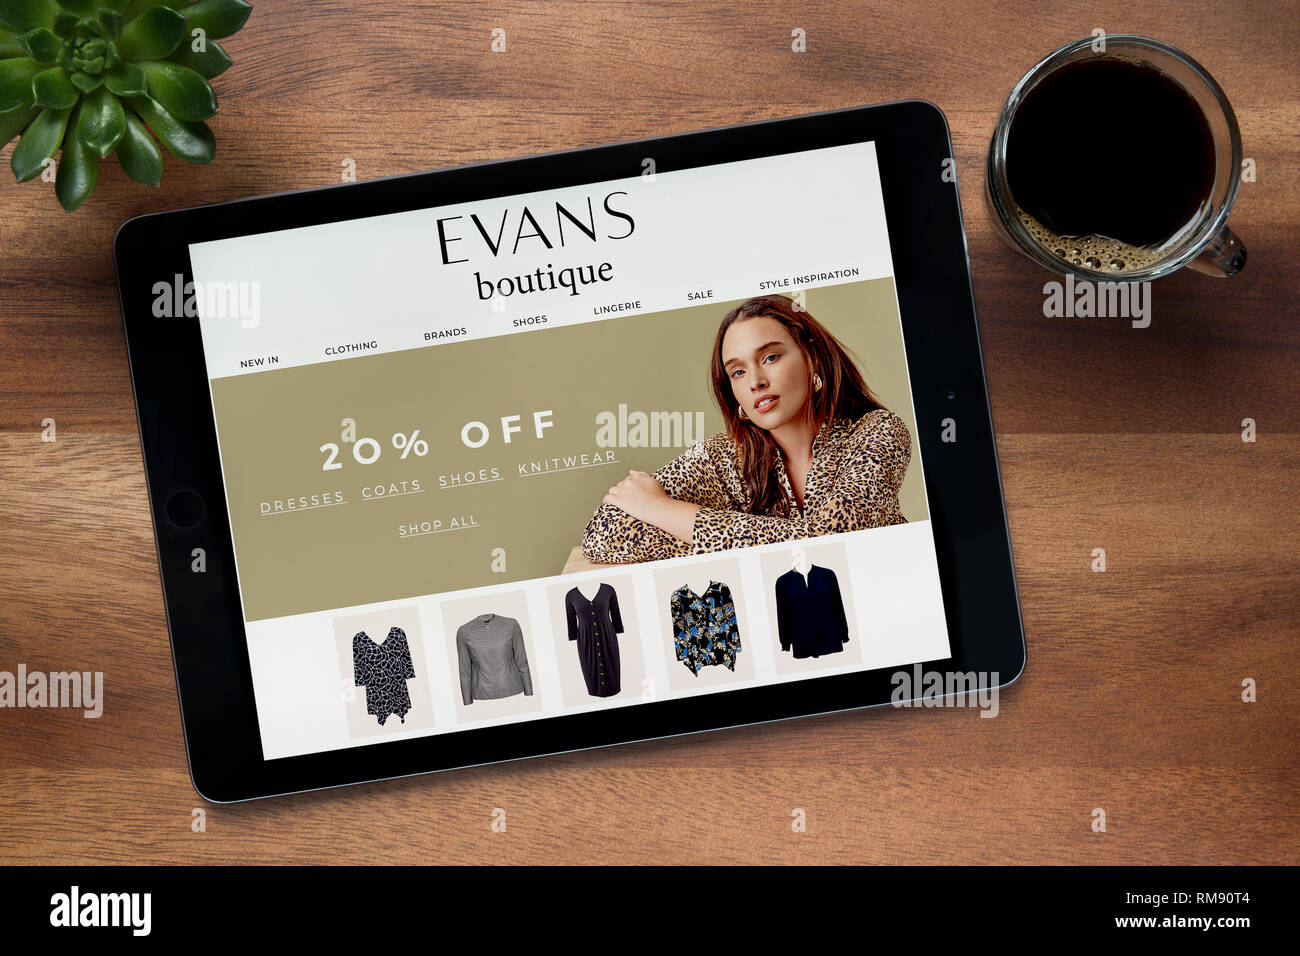 The website of Evans Boutique is seen on an iPad tablet, on a wooden table along with an espresso coffee and a house plant (Editorial use only). - Stock Image